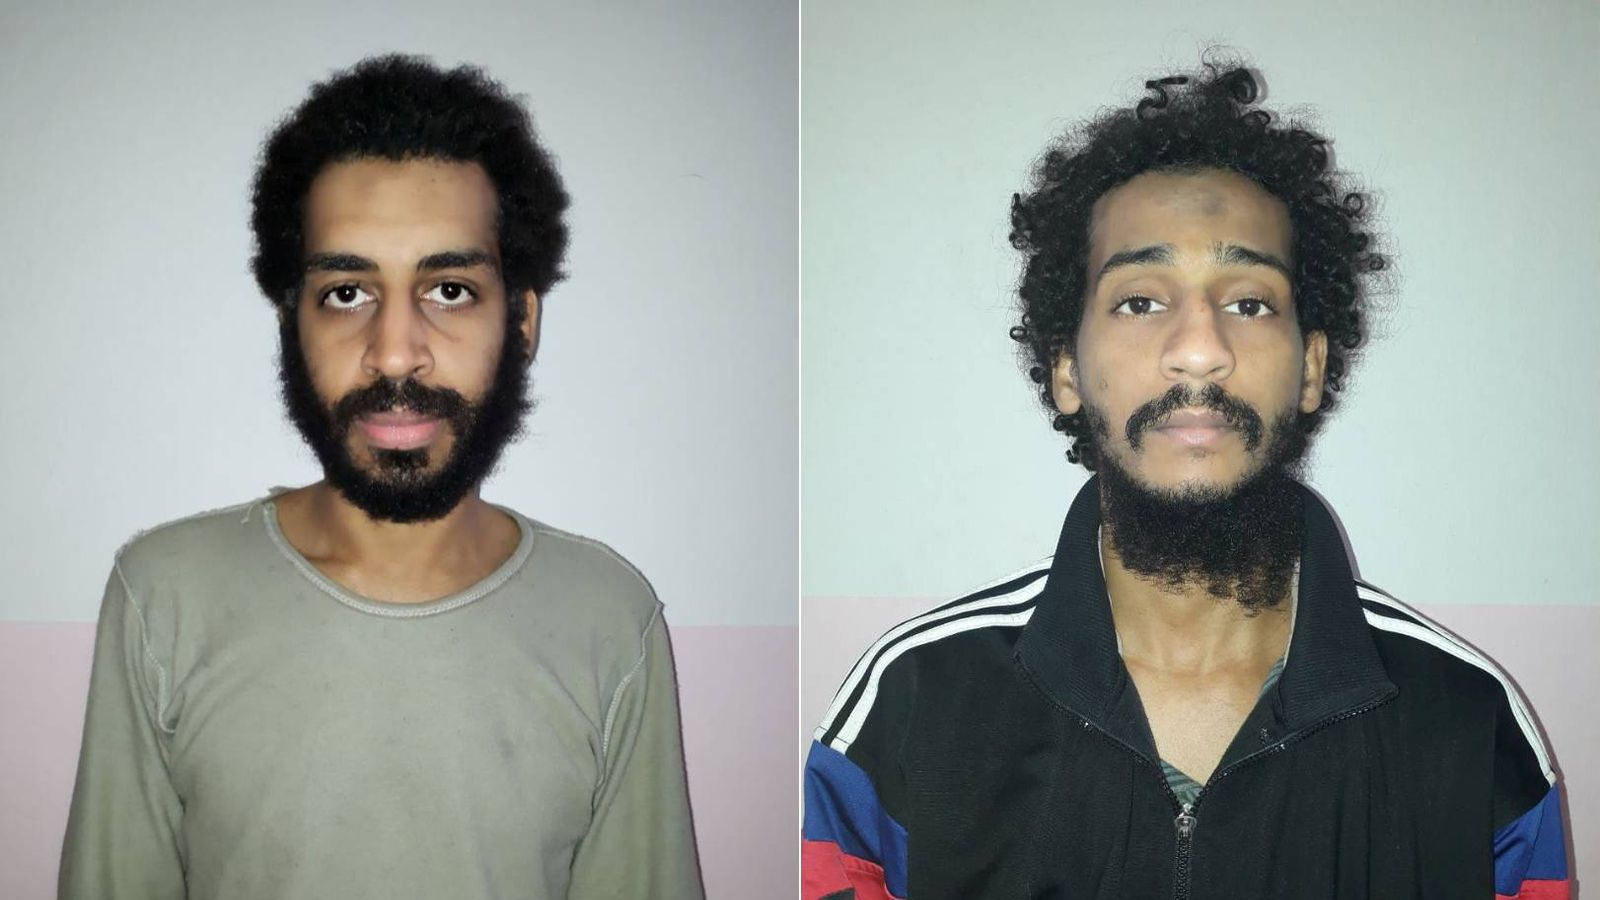 'Beatles' jihadists caught in Syria will face justice, Rudd says